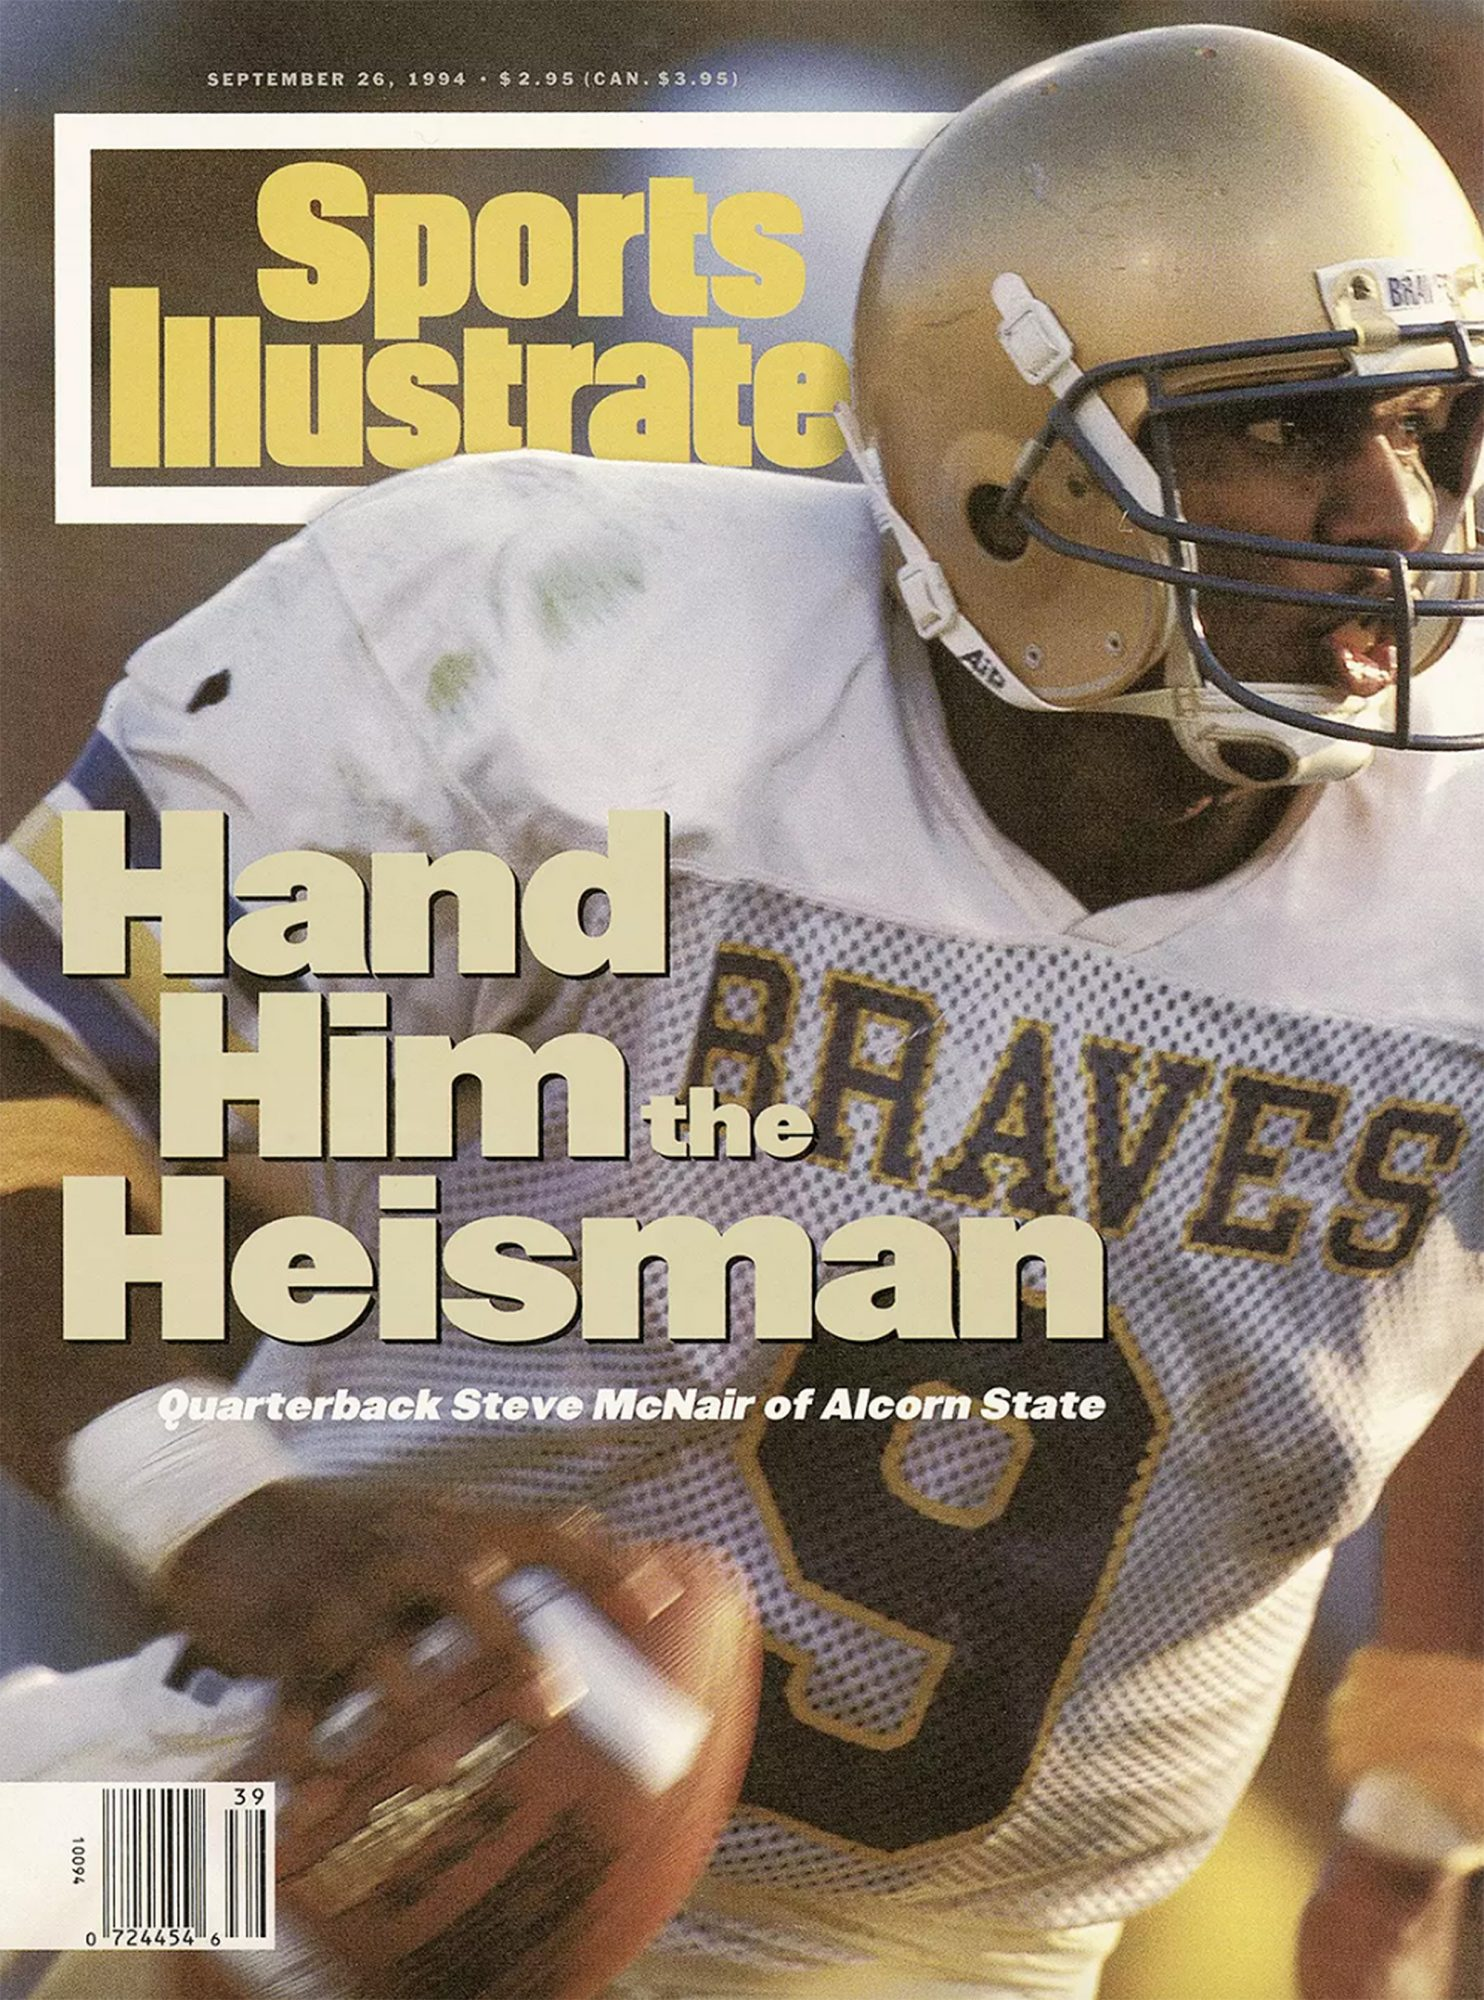 Steve McNair cover Sports IllustratedCredit: Sports Illustrated